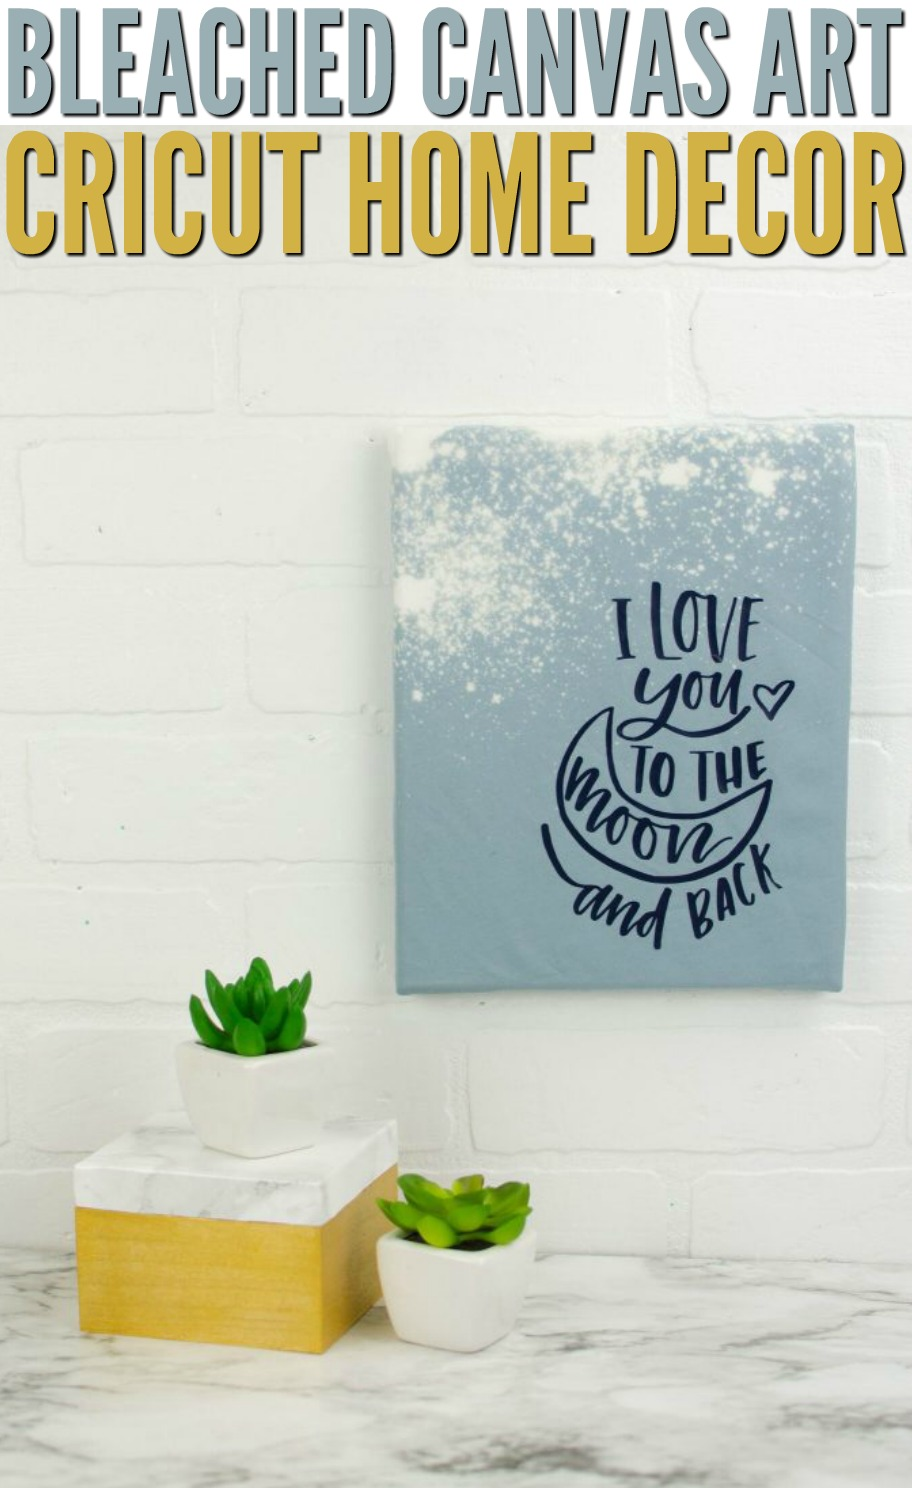 Bleached Canvas Art Cricut Home Decor A Little Craft In Your Day